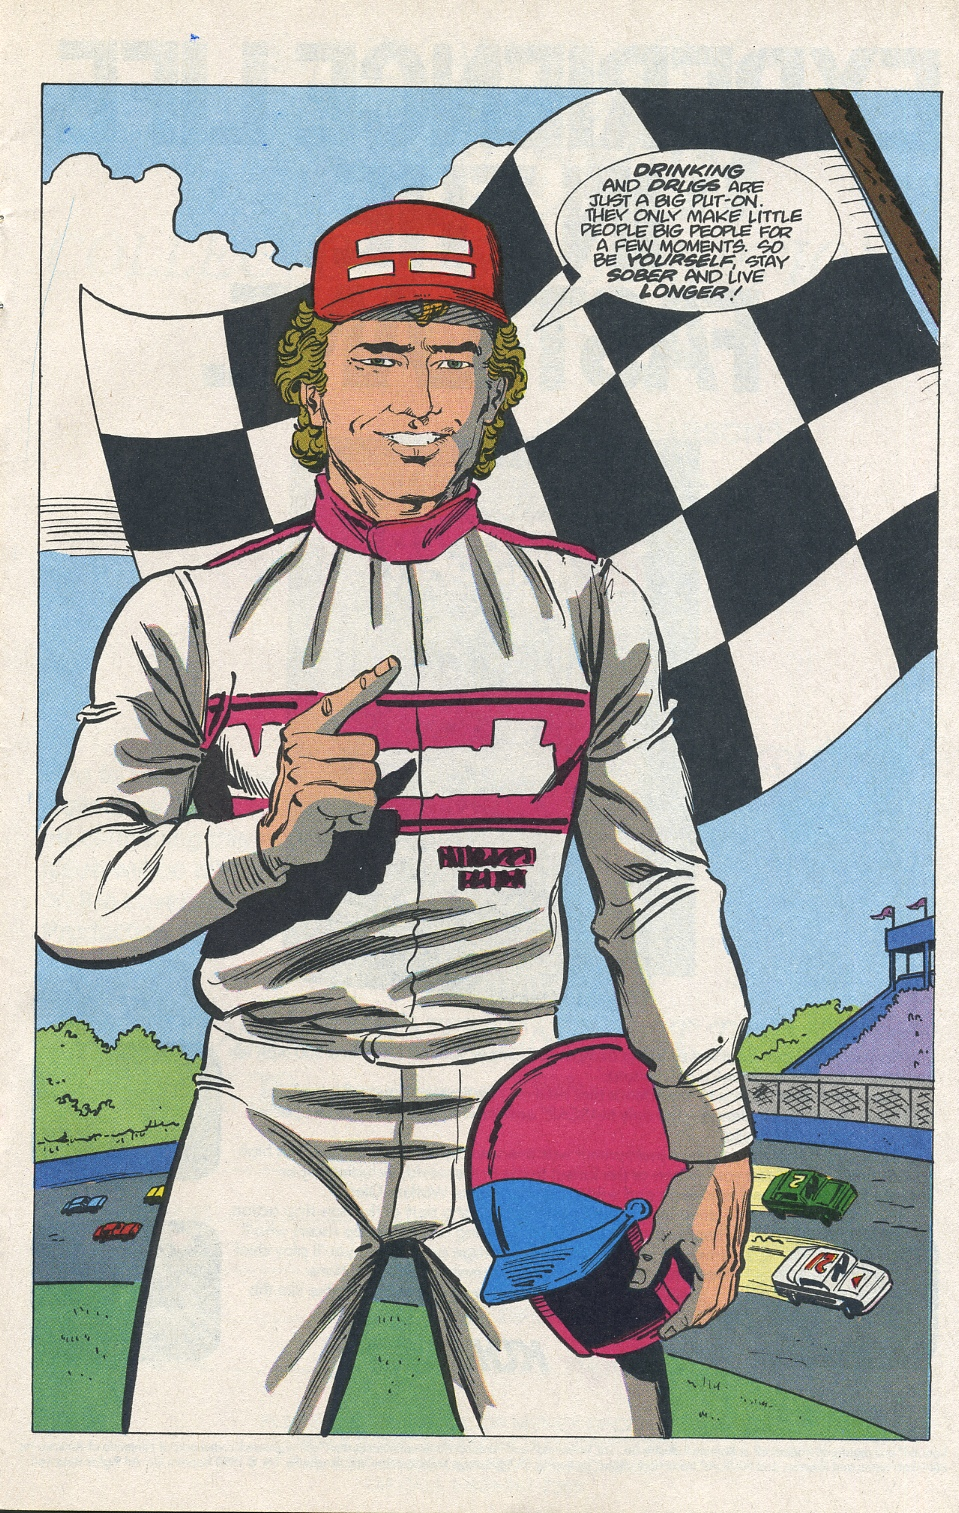 Photo of Morgan Shepherd Comic; Part 3 Conclusion